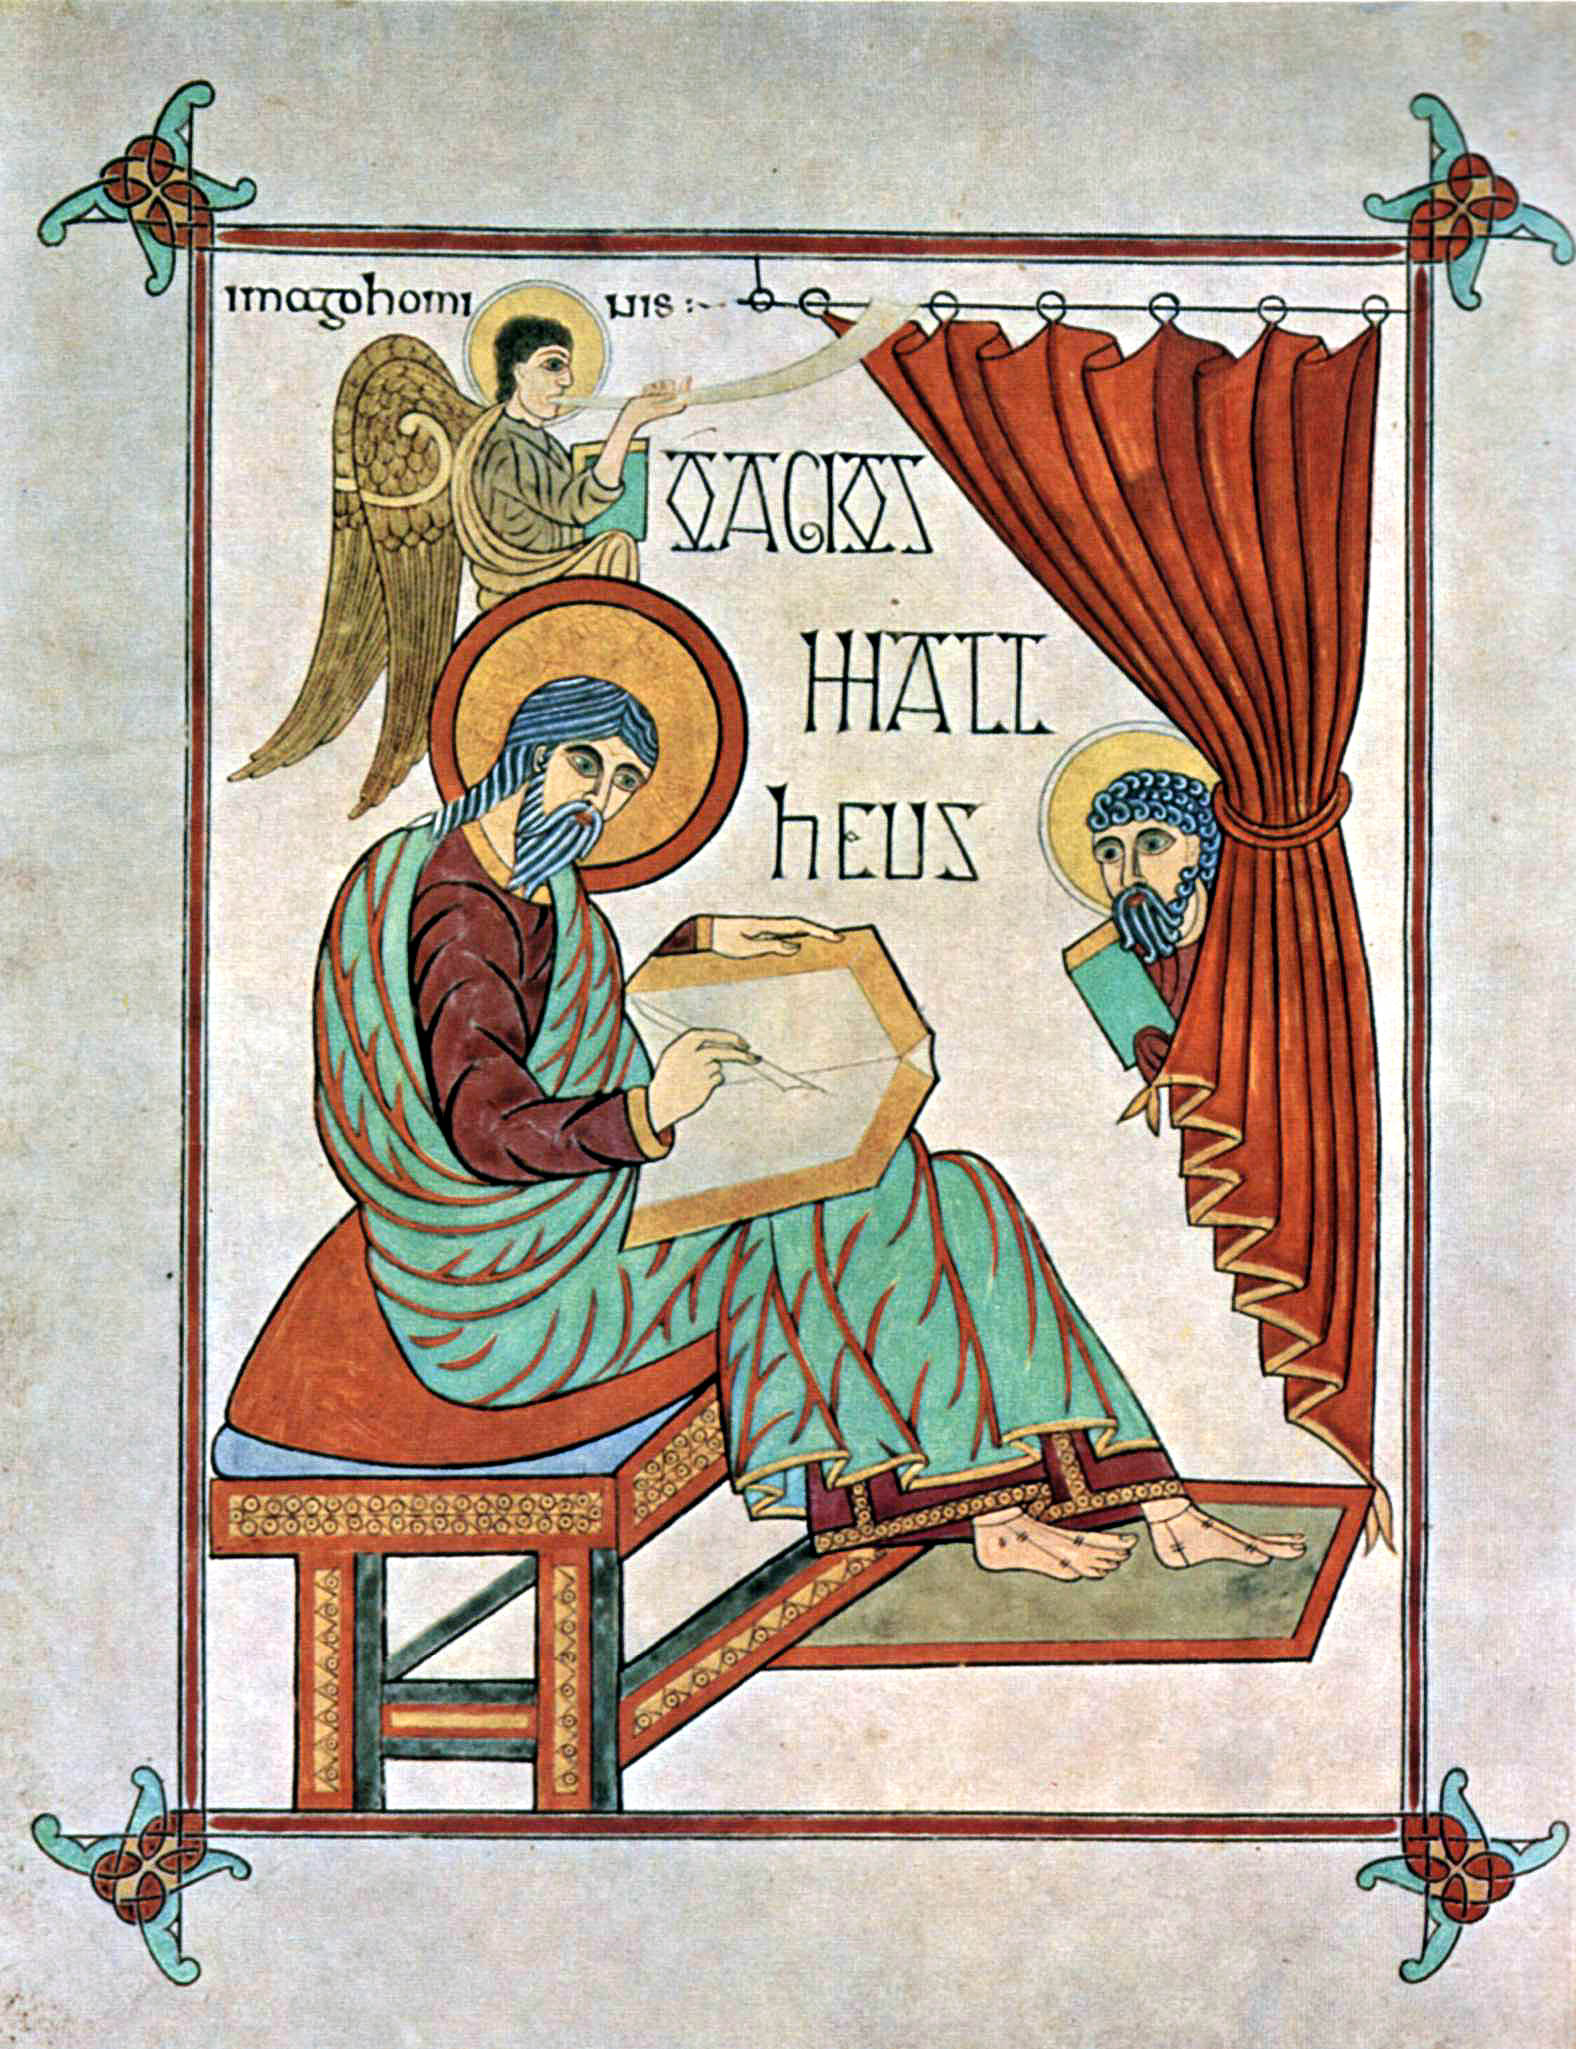 Portrait of Matthew in the Lindisfarne Gospels; By Meister des Book of Lindisfarne [Public domain], via Wikimedia Commons.